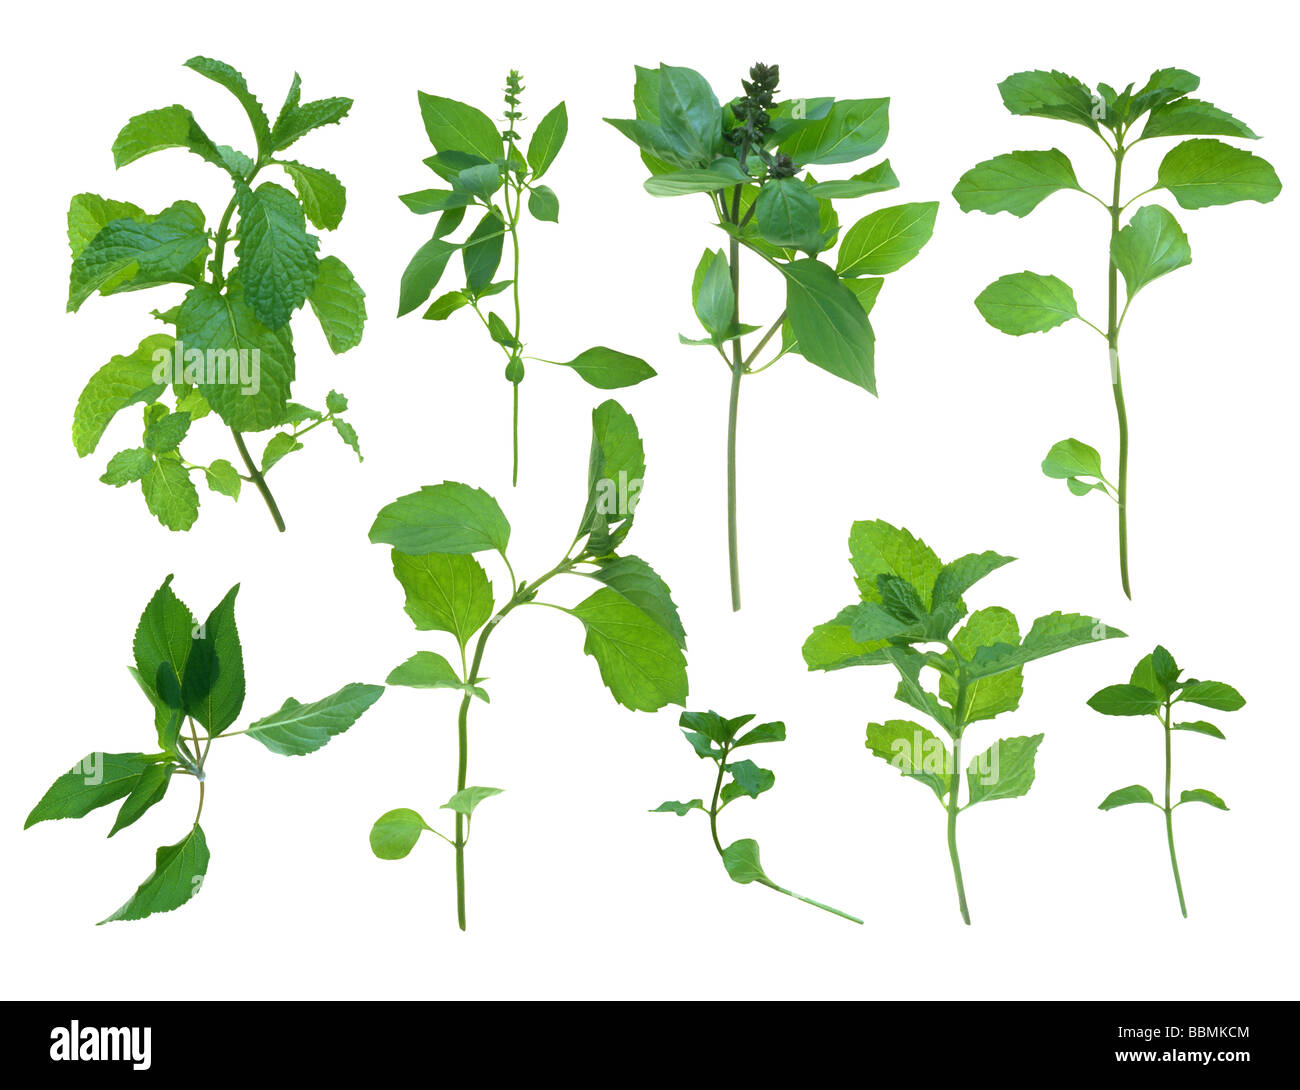 View of stems with green leaves - Stock Image